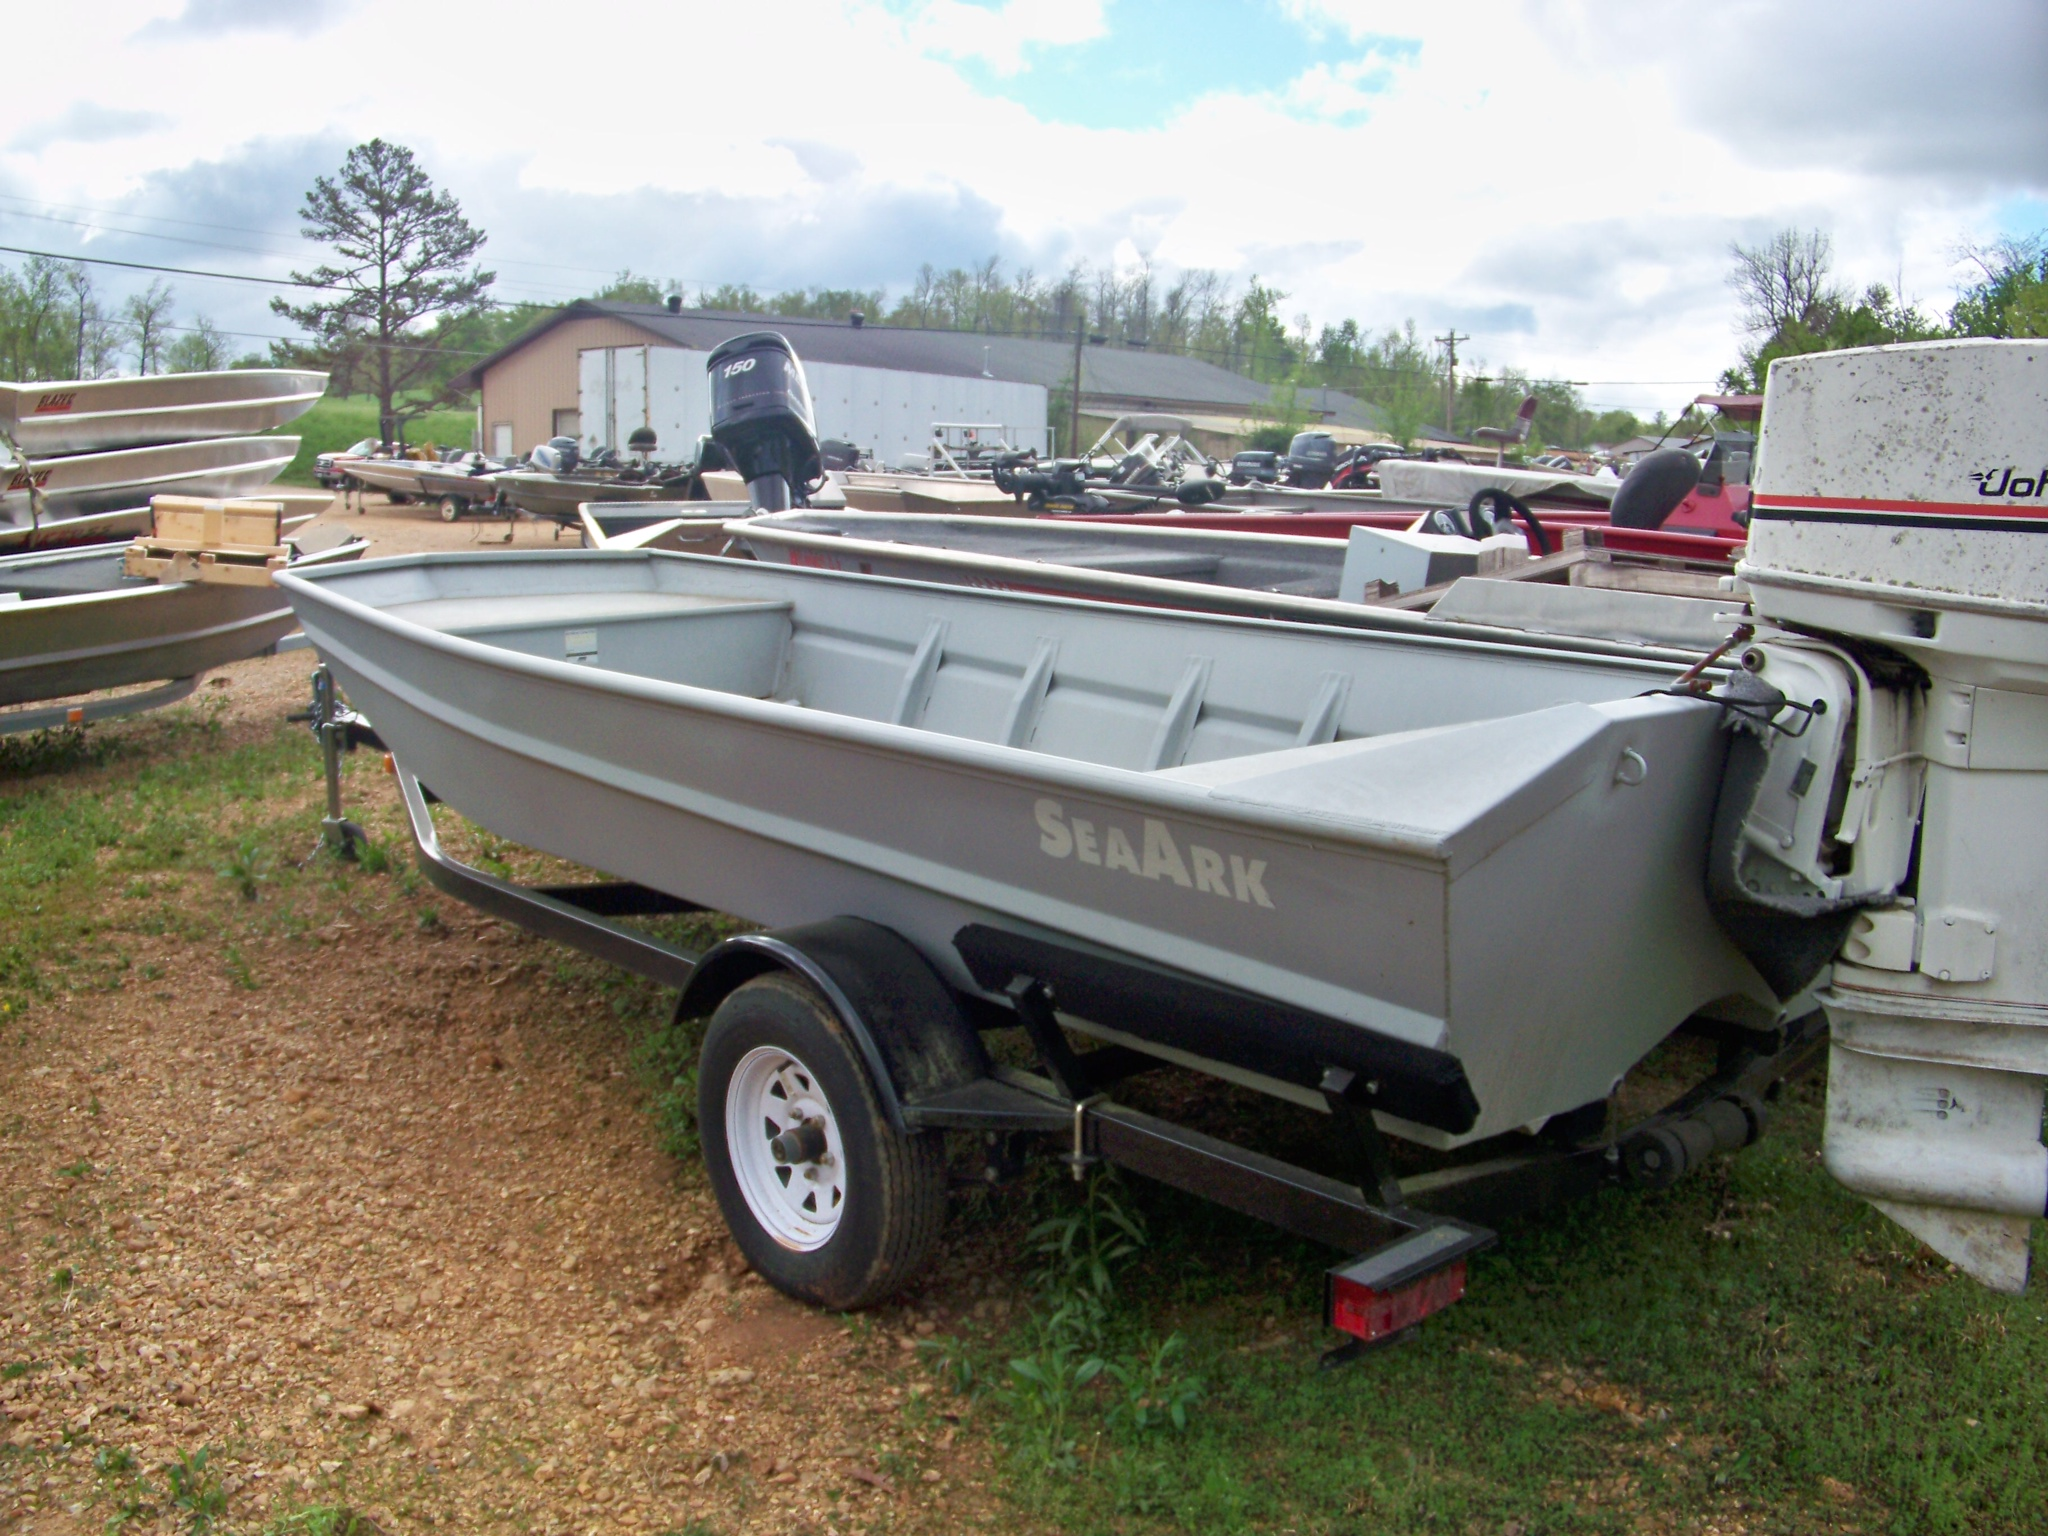 First picture of my new boat.  About 30 seconds later my wife was informed of our new purchase.